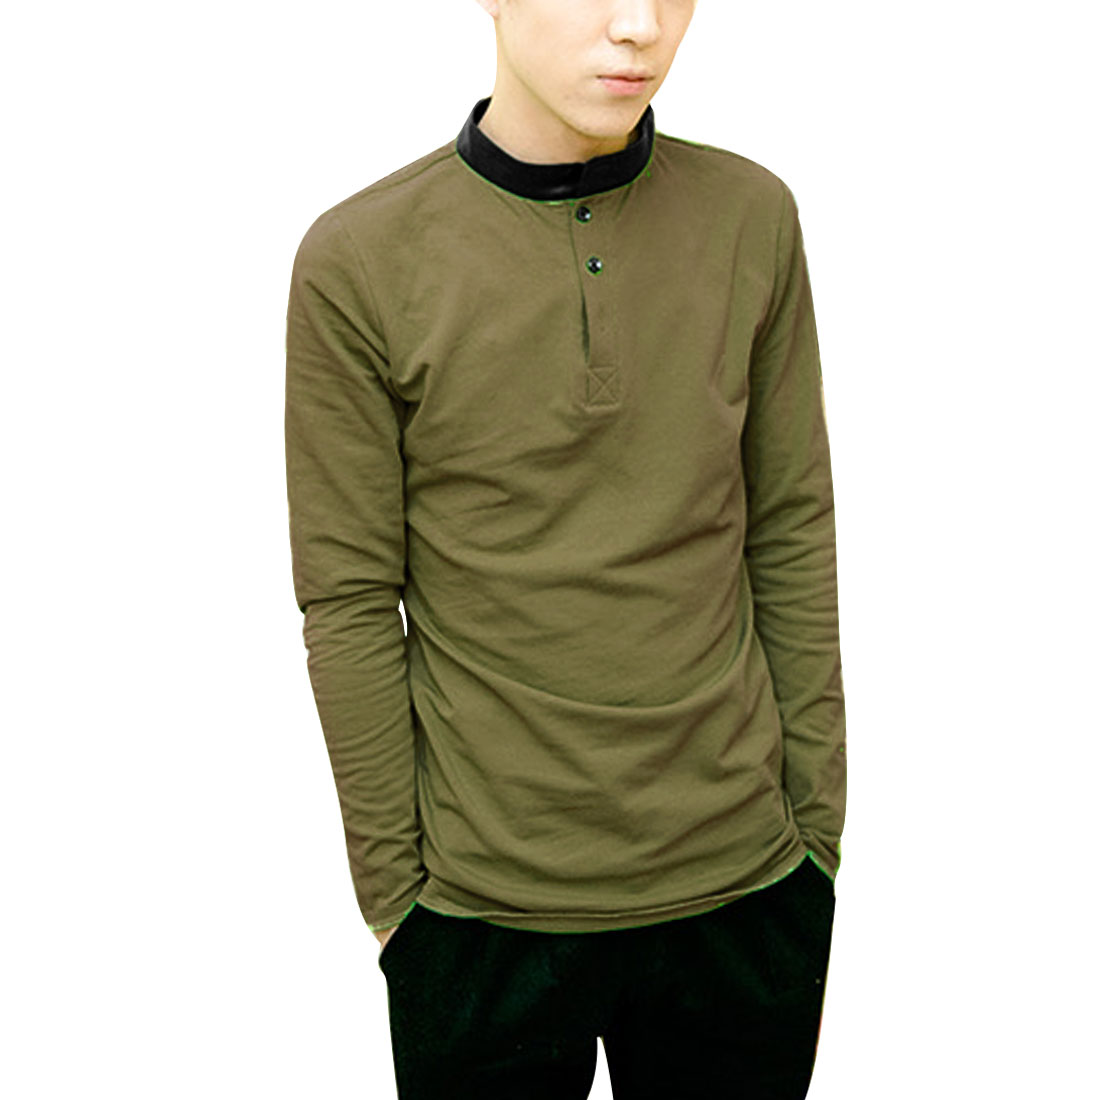 Men S Khaki Mock Neck Stretchy Style Long Sleeve Skinny Fit Casual Shirt